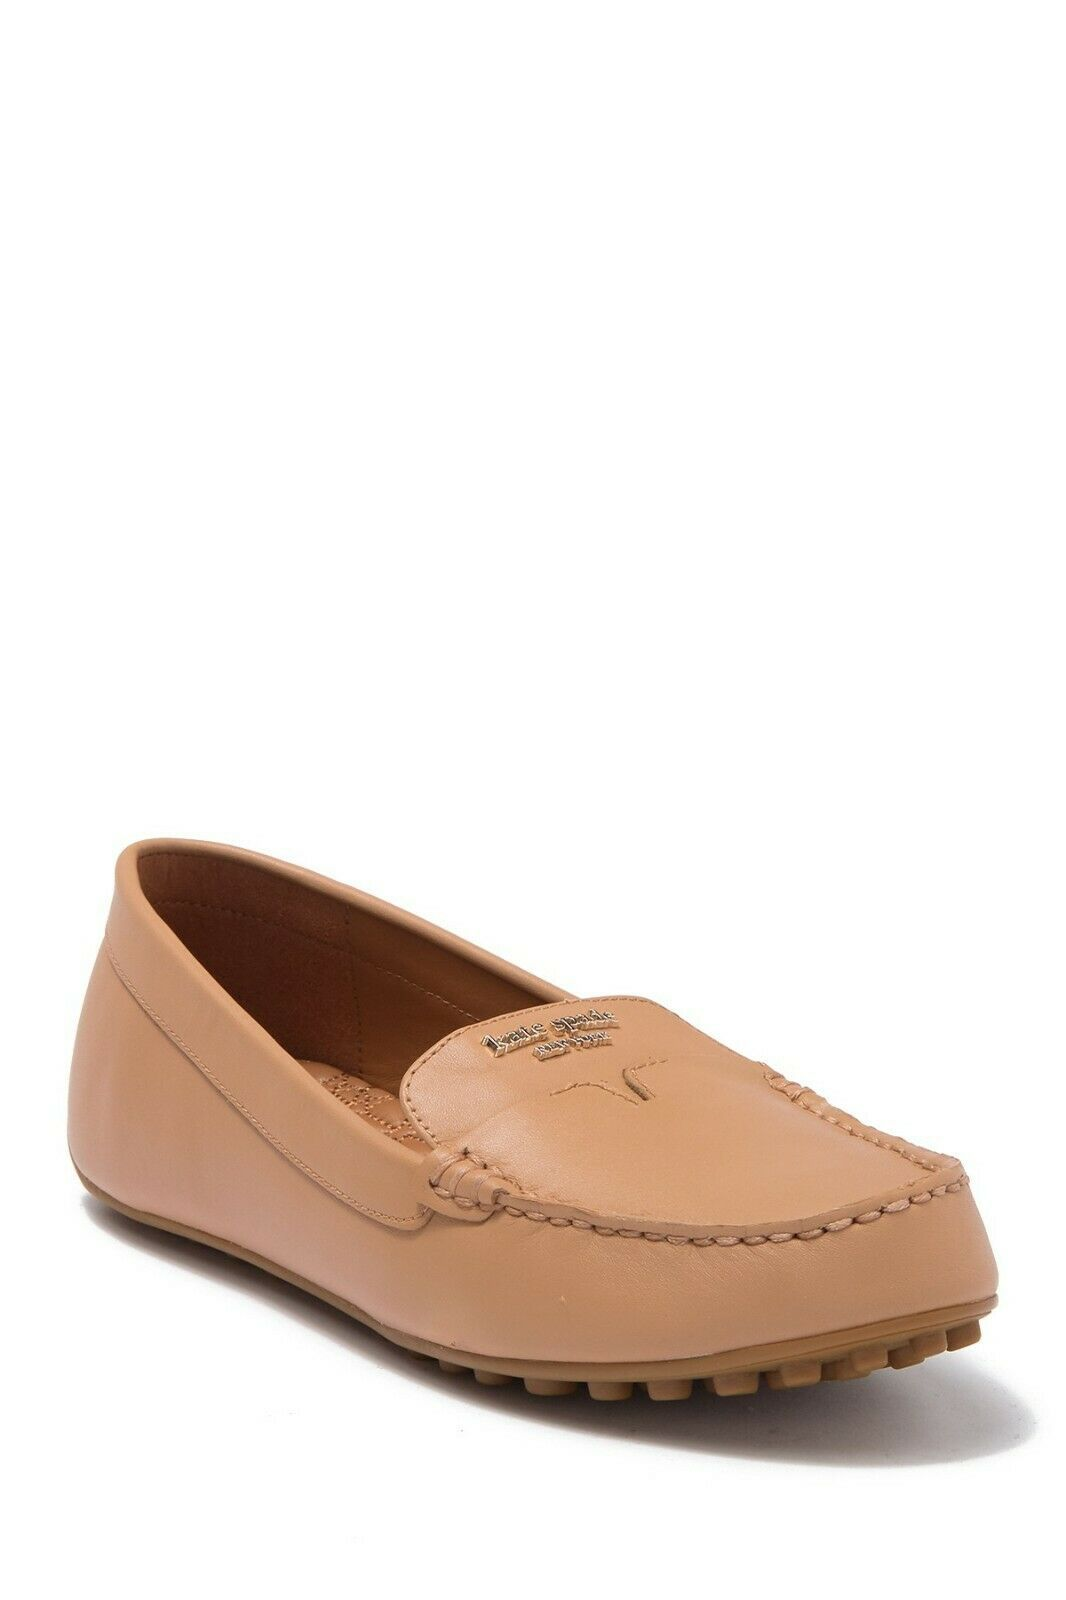 Kate Spade New York Women's Deck Flats Moc Loafer Shoes Size 6 - $118.79